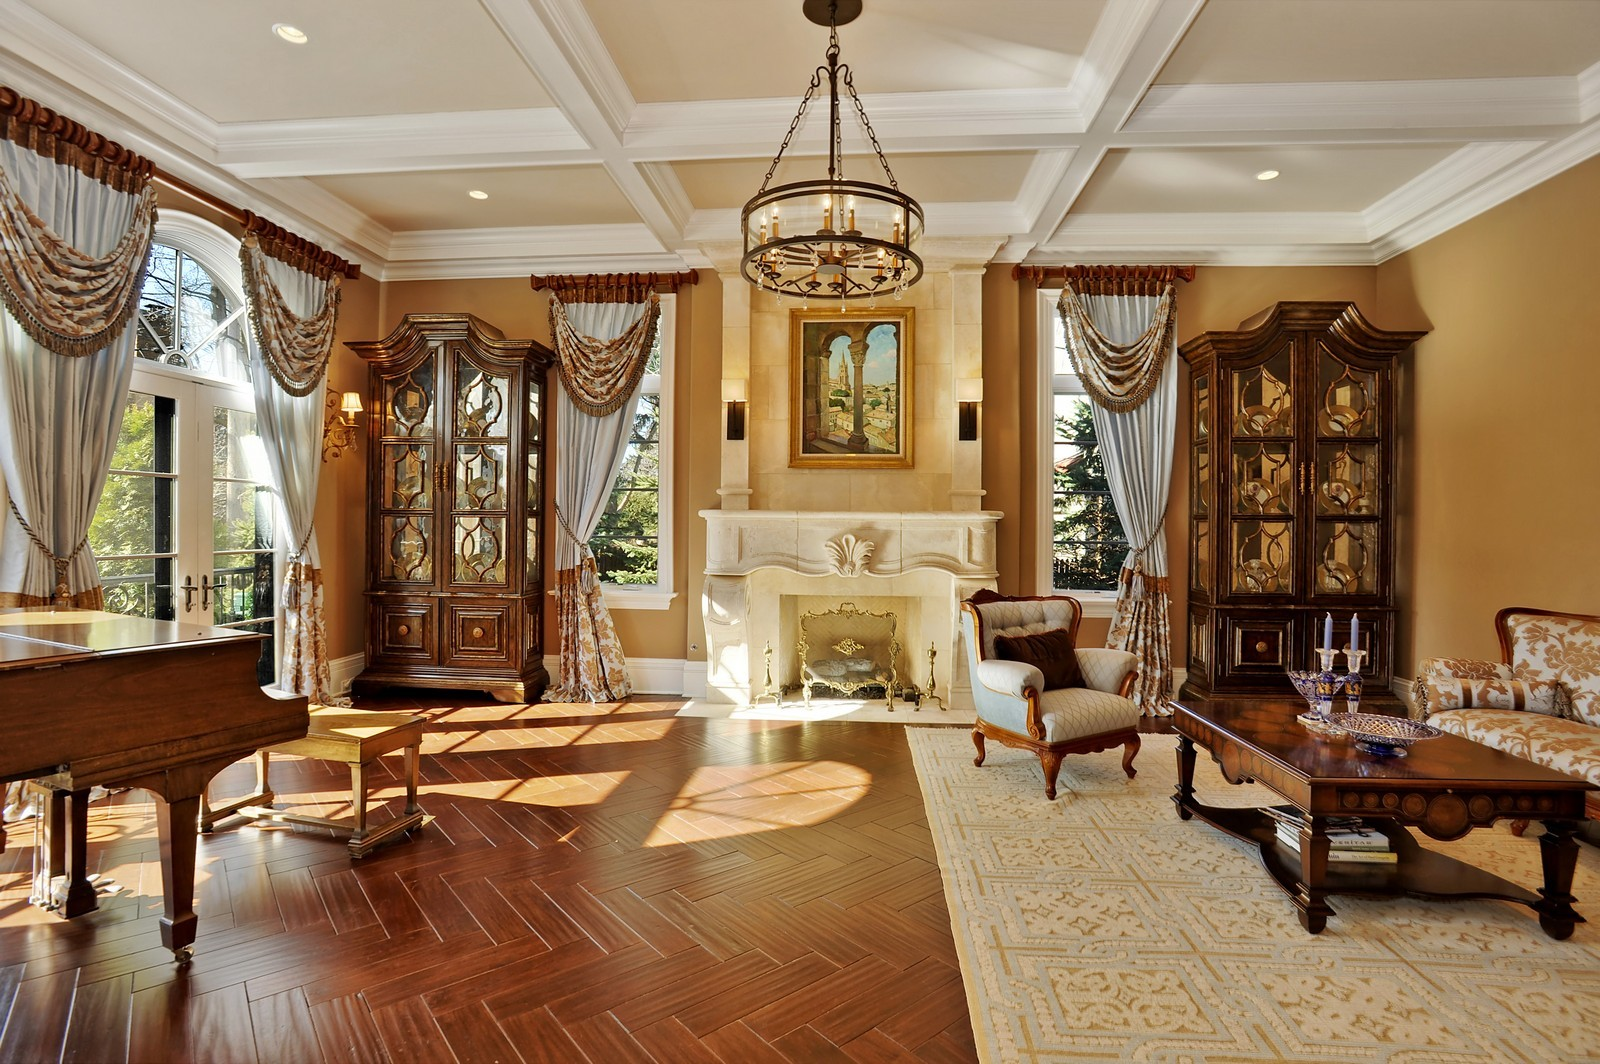 Real Estate Photography 319 Sheridan Rd Winnetka Il 60093 Living Room Look Inside Most Expensive Luxury